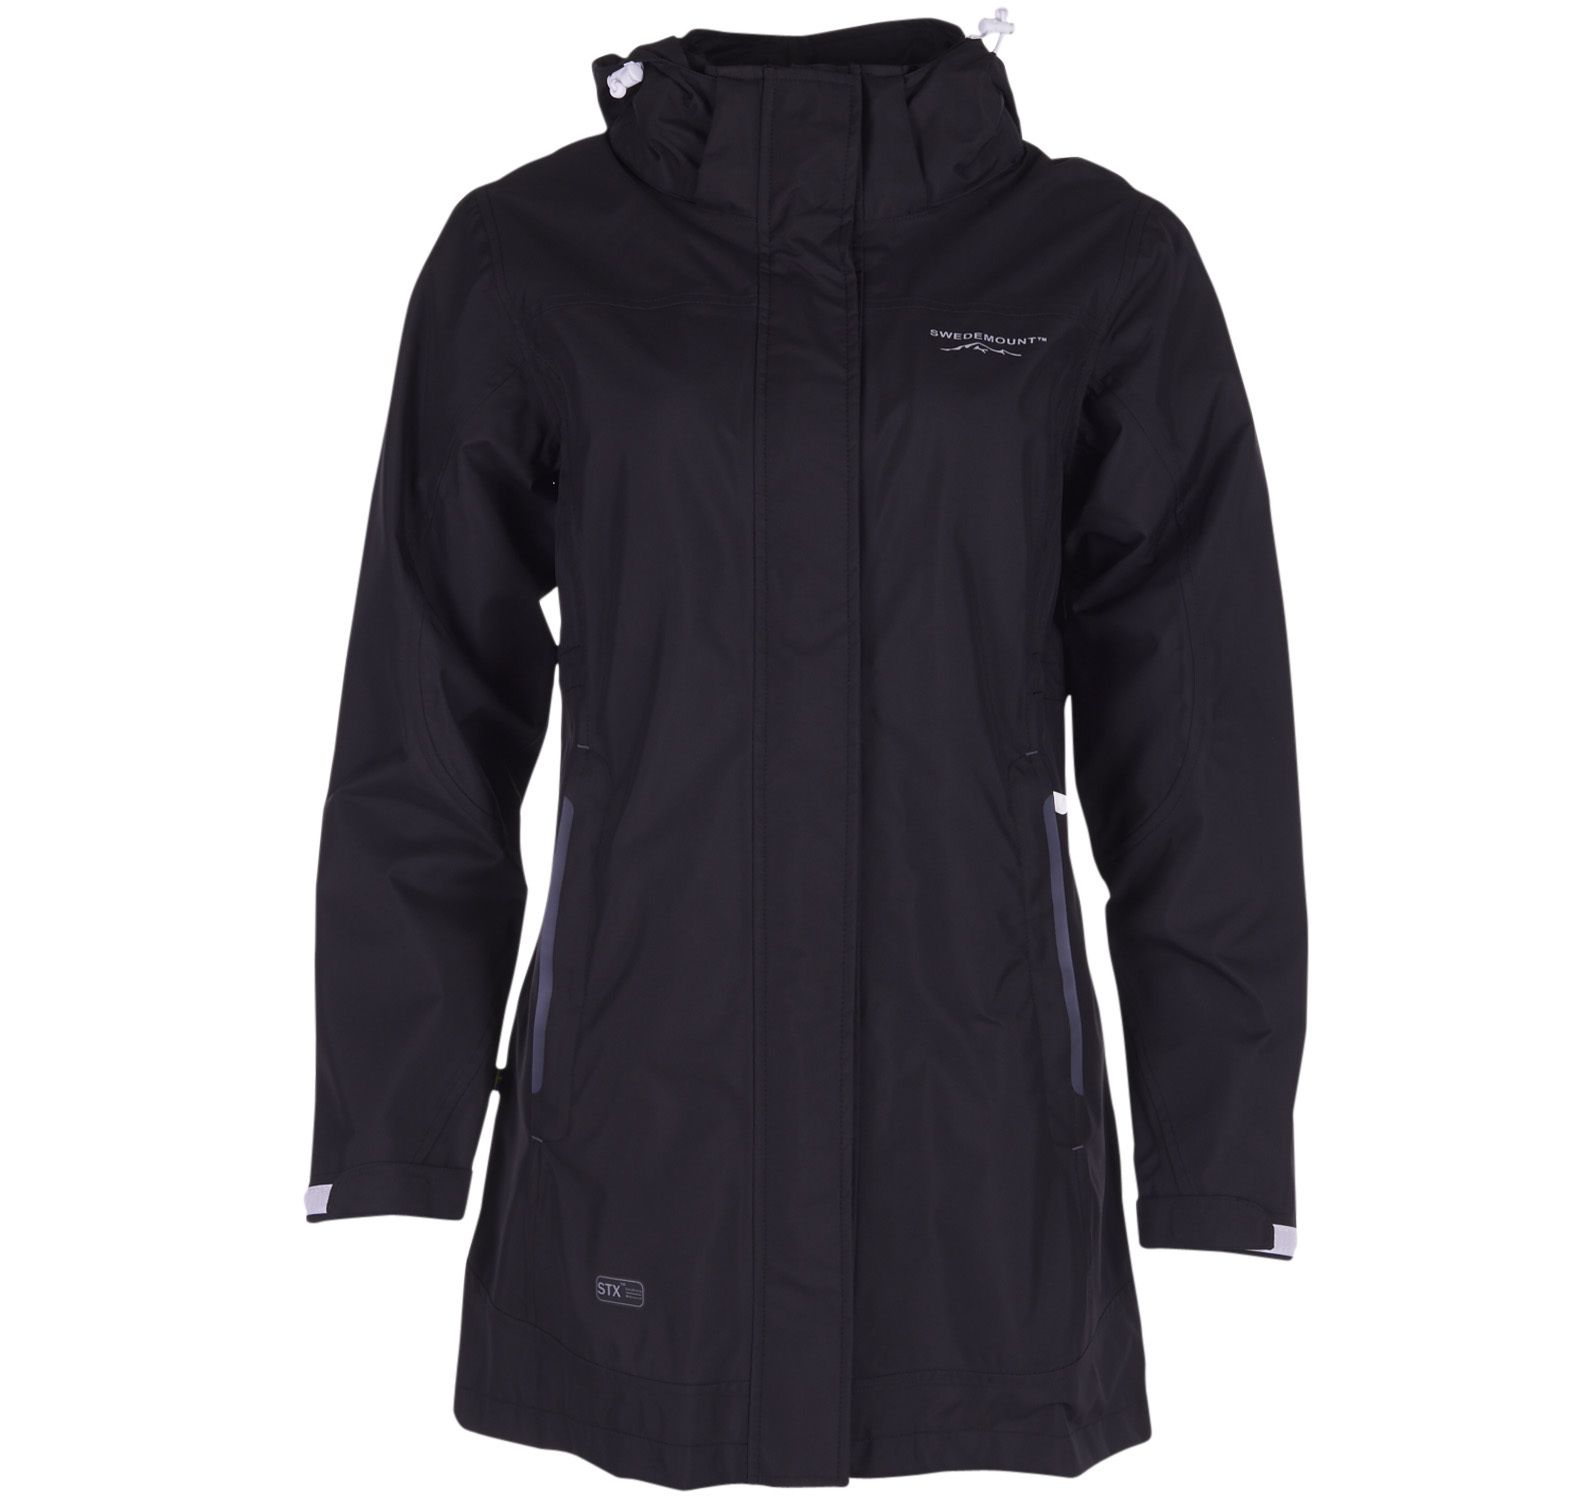 Musö Raincoat W, Black, 44, Regnkläder